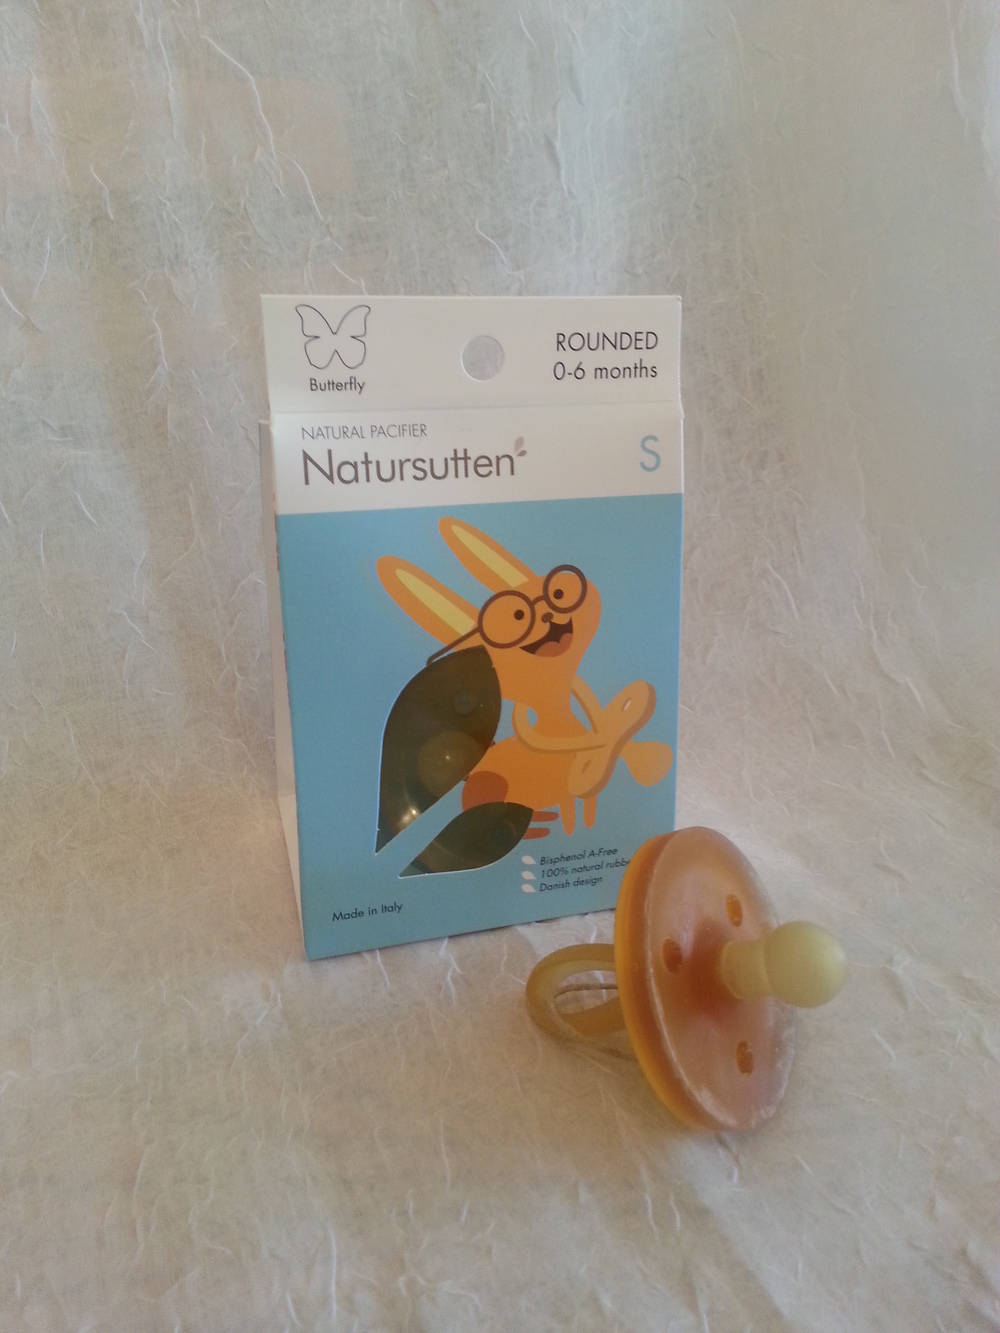 Natursutten Natural Rubber Pacifier Rounded 0-6m $8.95 Wants 1